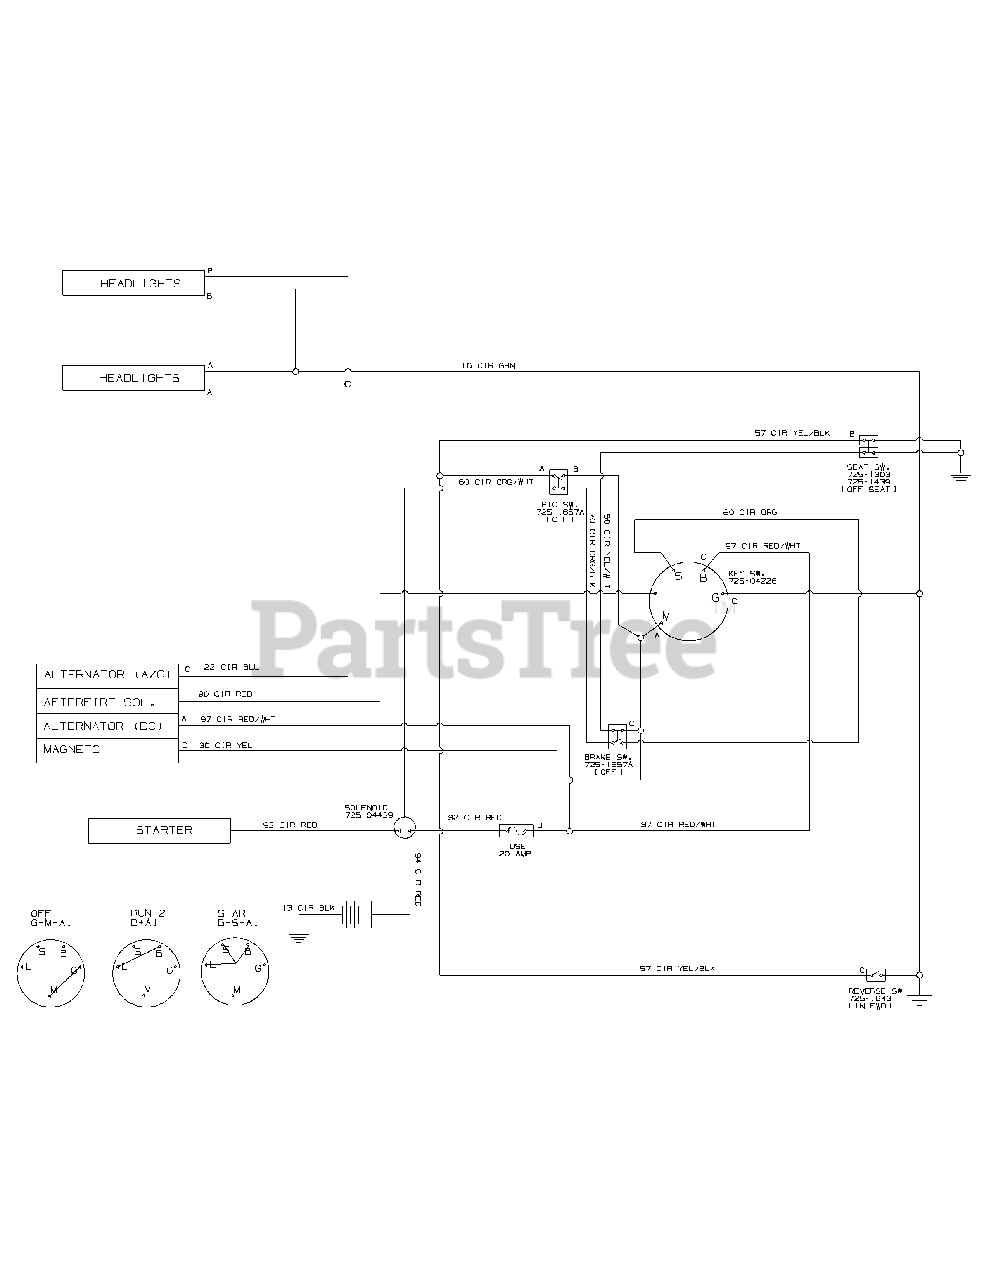 white tractor lt 13 wiring diagram huskee lt 4200  13w2775s231  huskee lawn tractor  2015  wiring  huskee lawn tractor